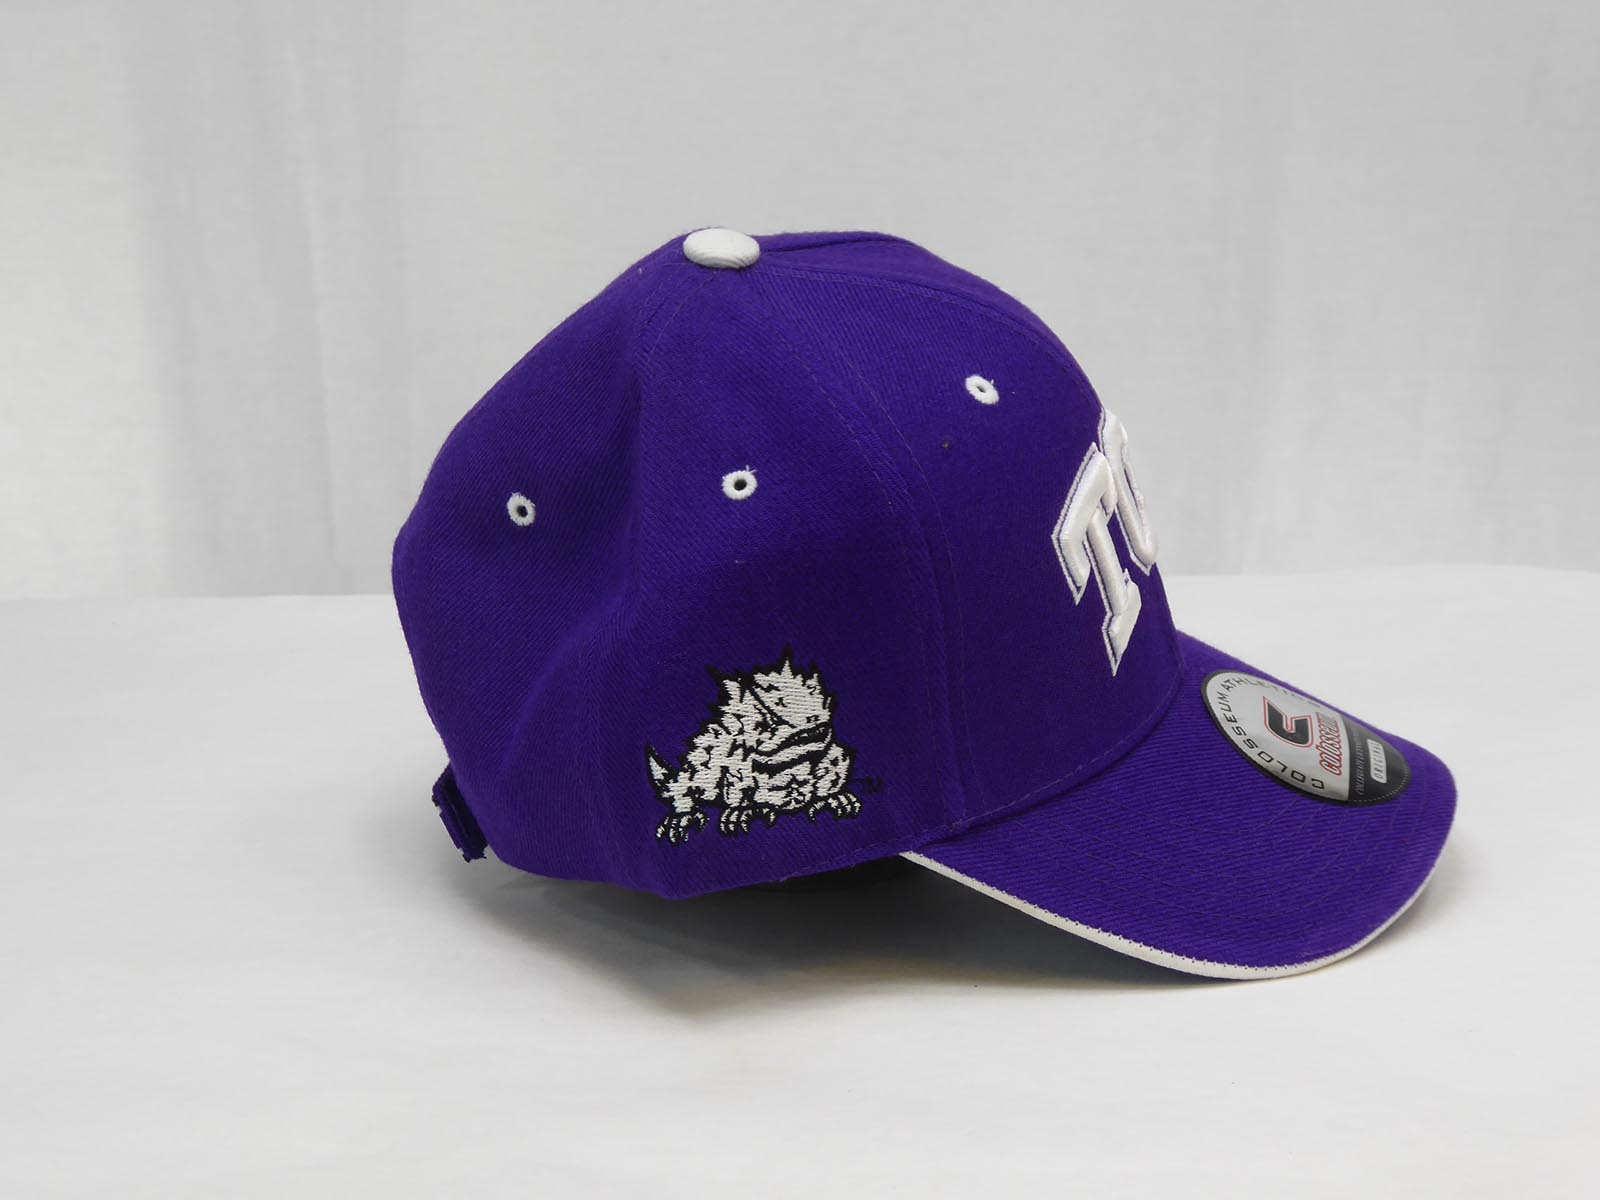 Texas Christian University with embroidered TCU on front Team logo on side  One Size Fits All Hook   Loop Fastener Purple White a1773f4c2f10